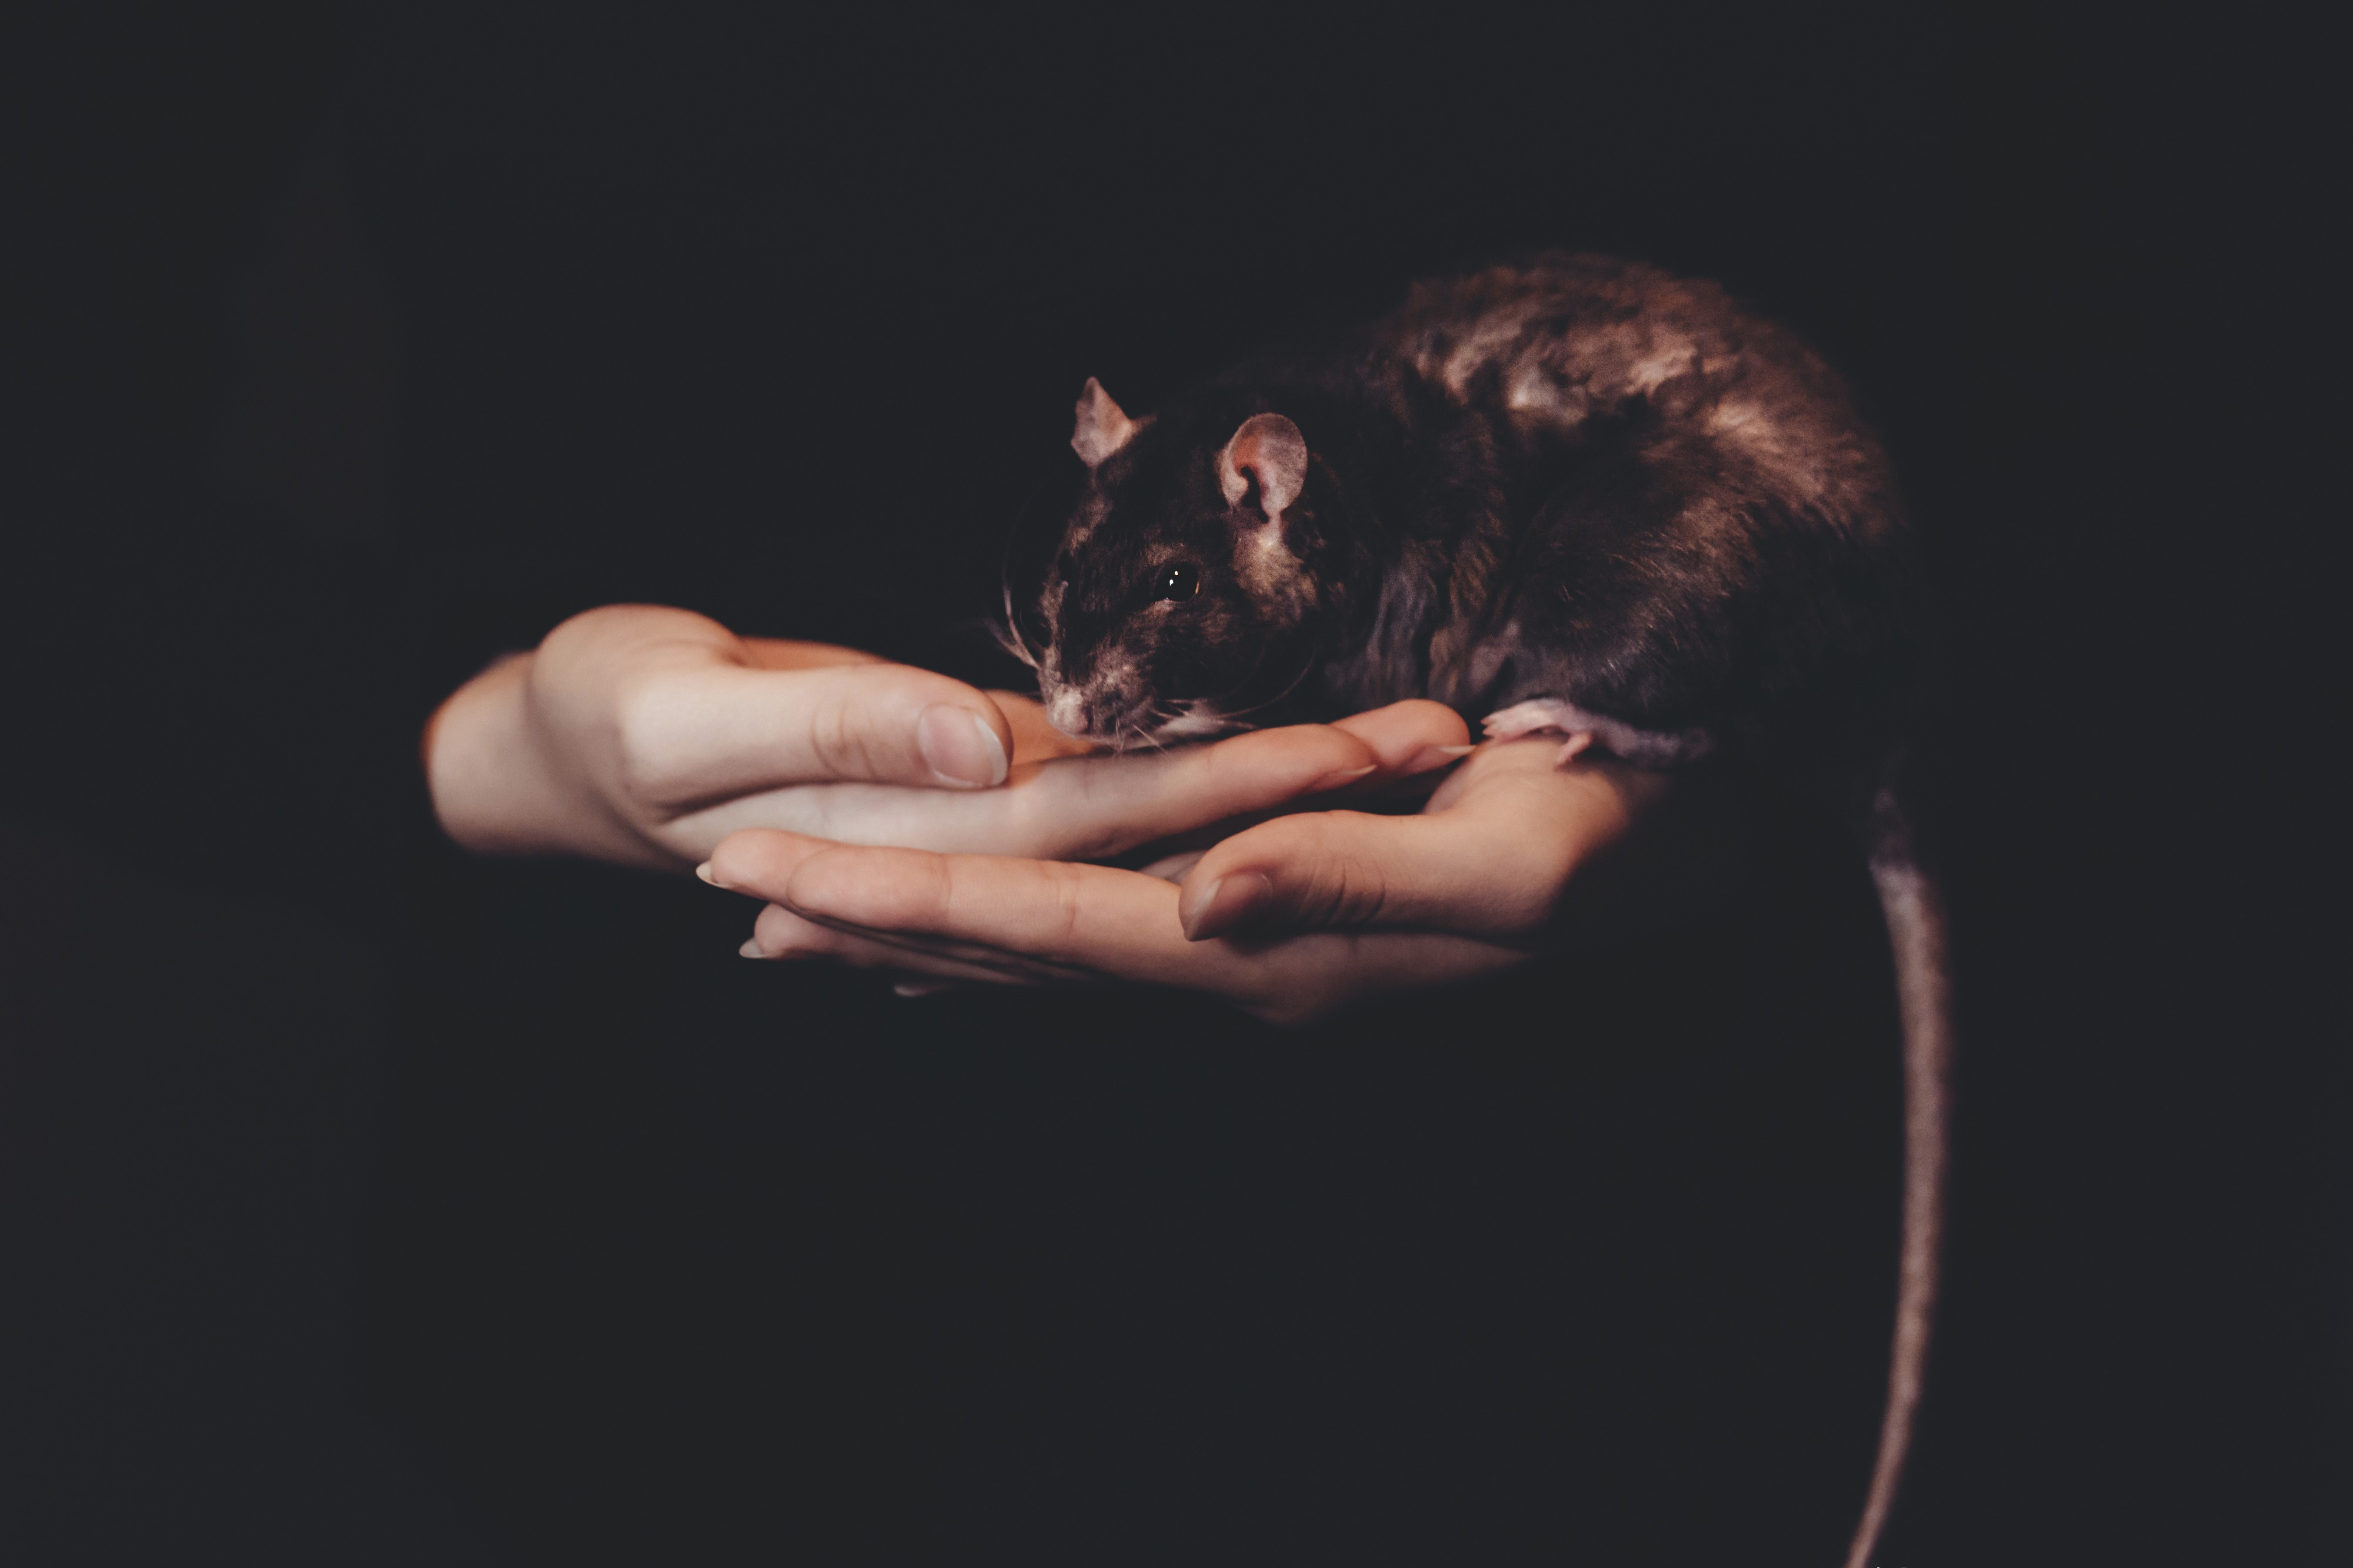 A pair of hands holding a brown rat against a black background.